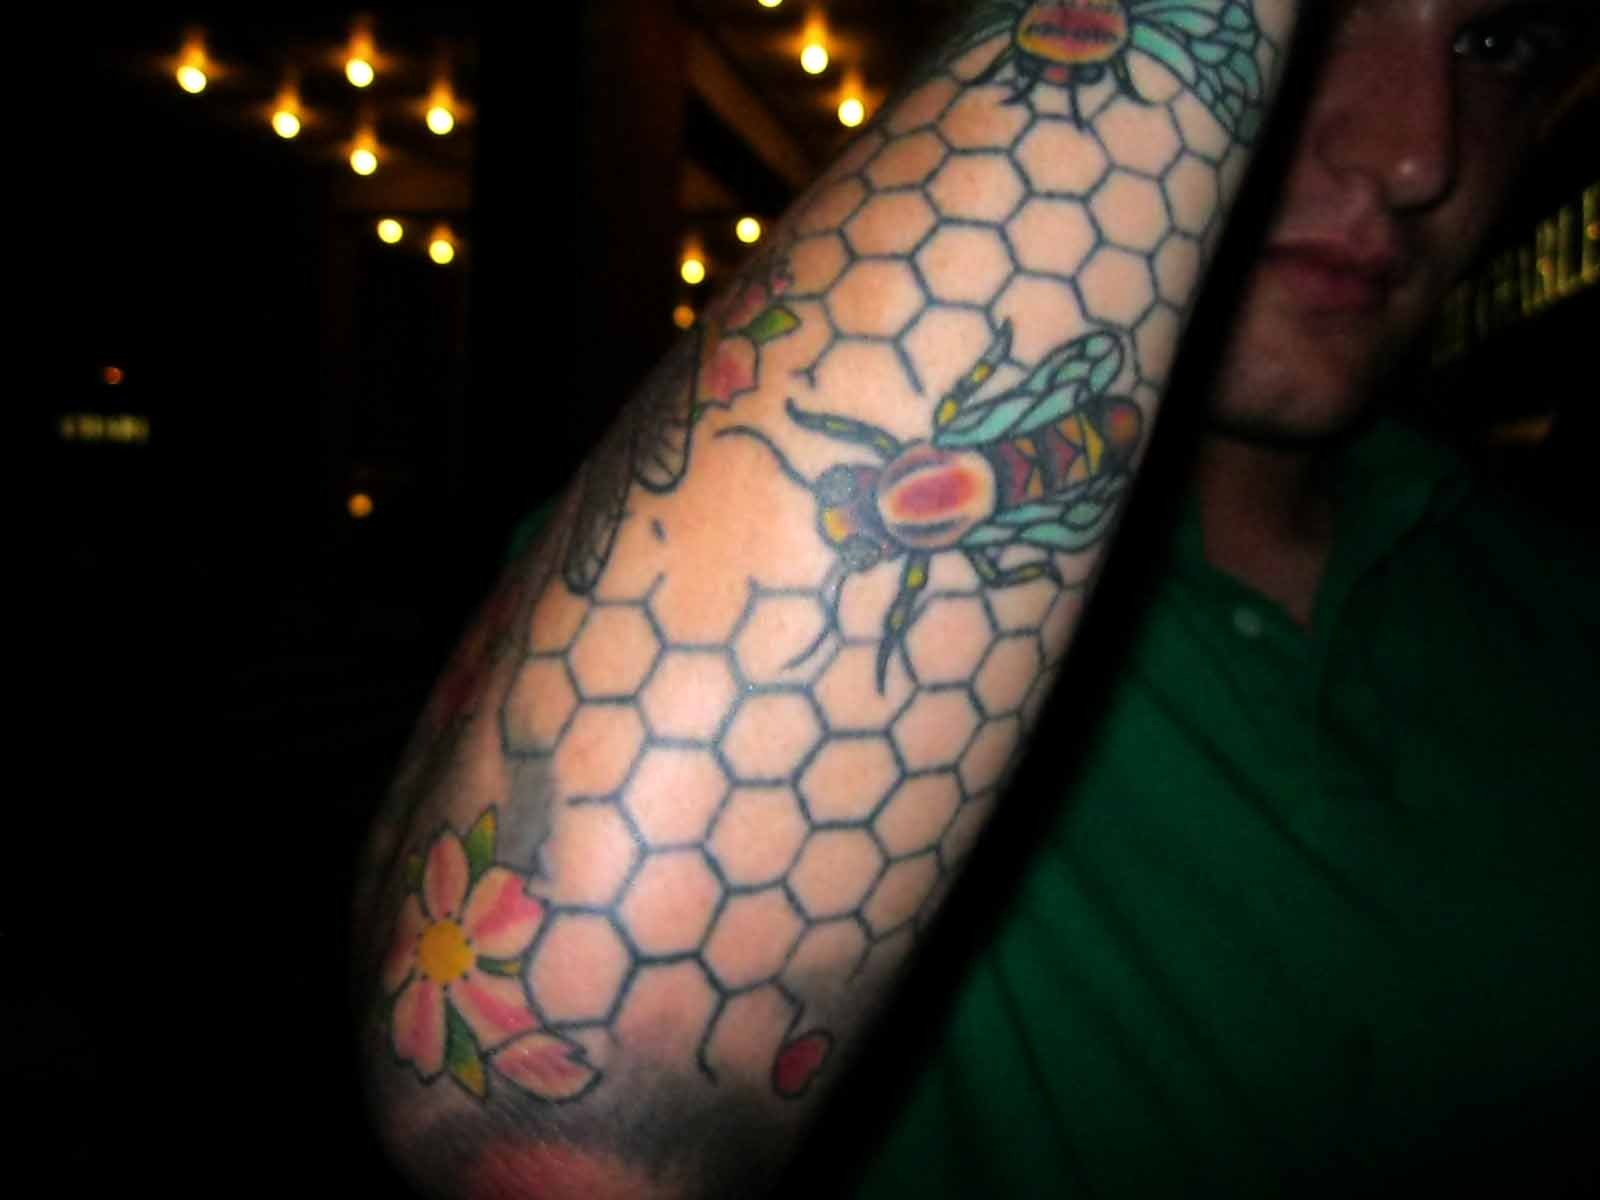 Awesome Bee Tattoo On Forearm